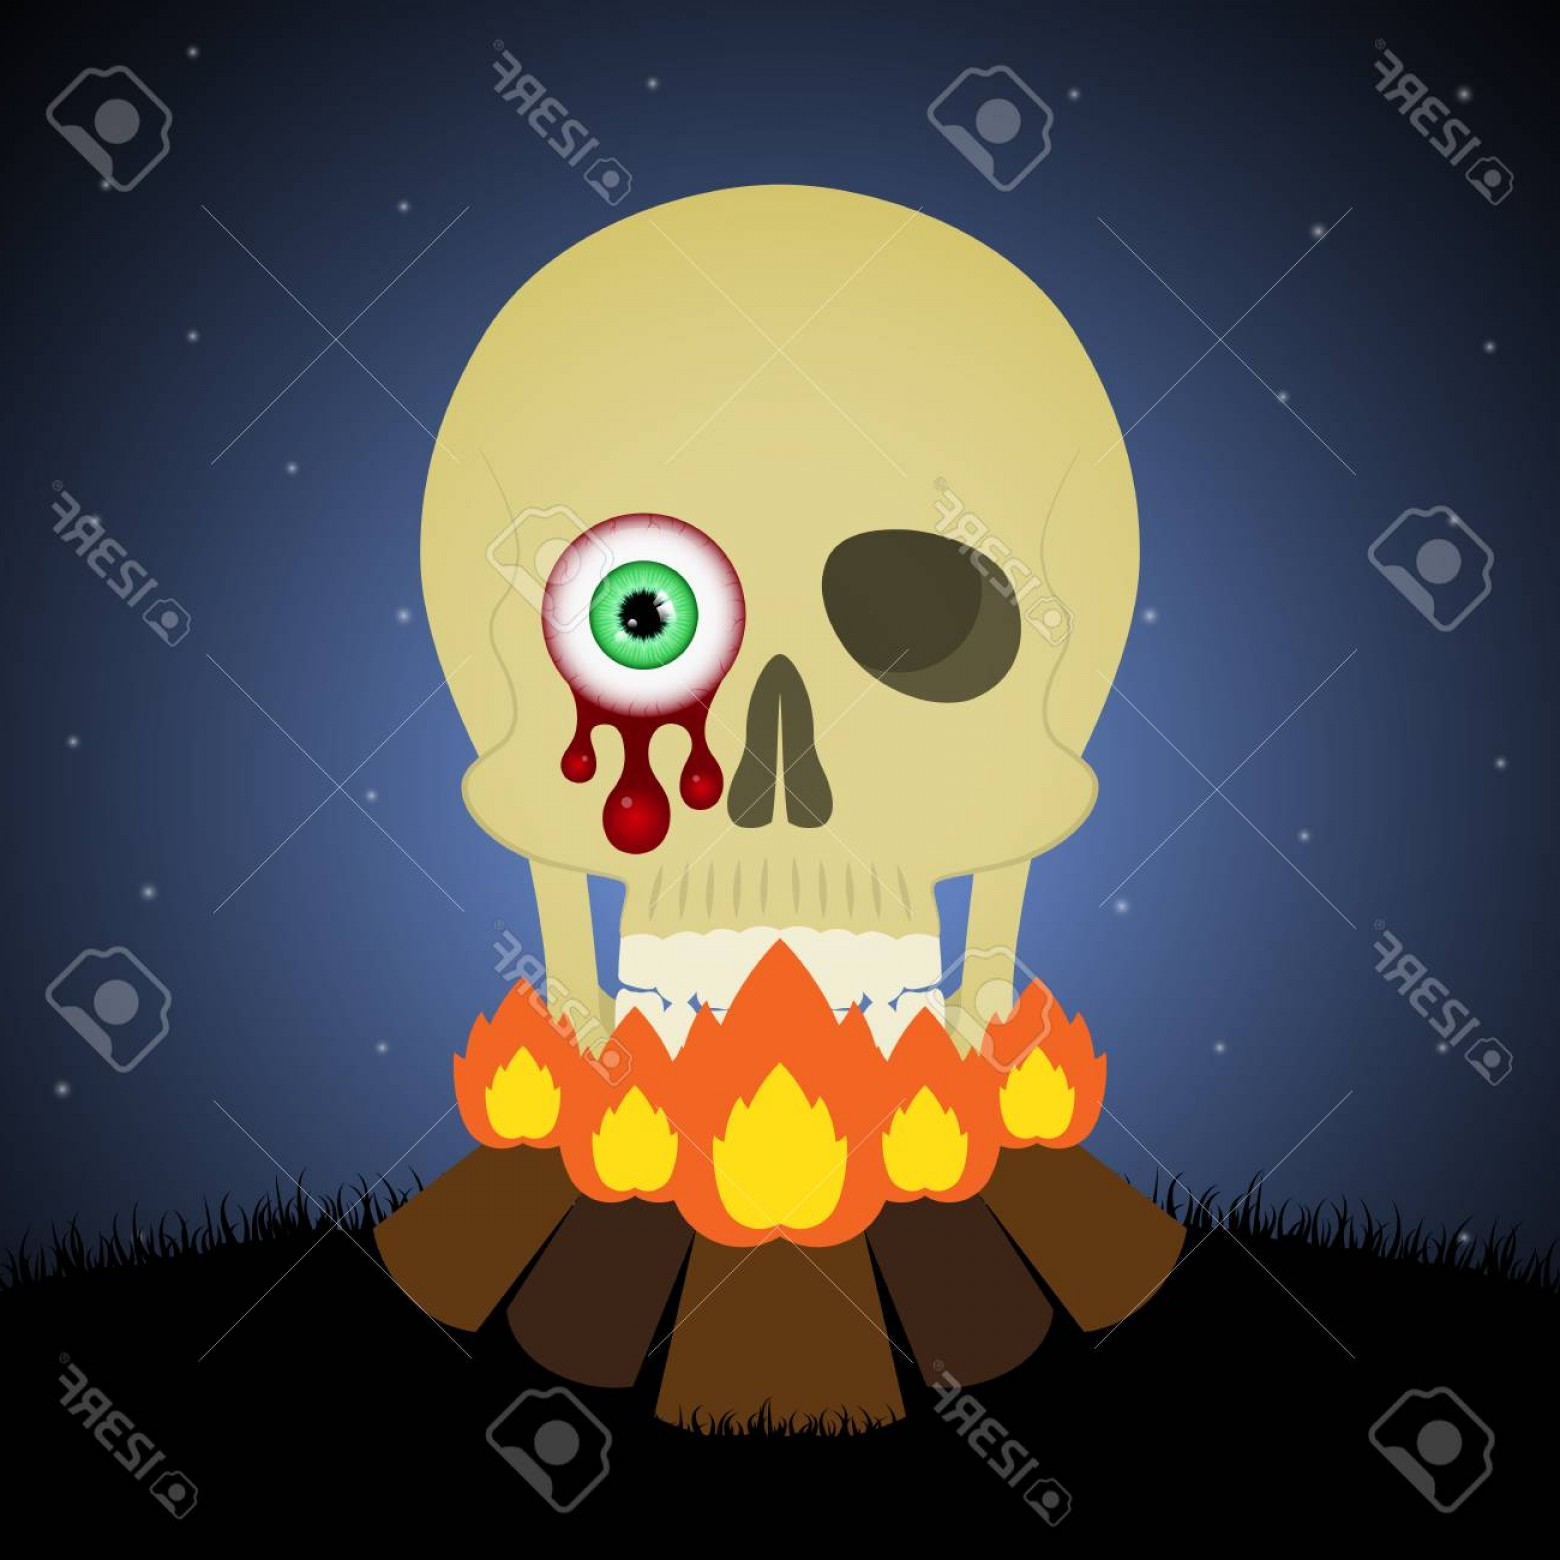 Headless Scary Halloween Skeletons Vectors: Photostock Vector Halloween Festival And Celebration Abstract Background Bonfire With Blood Eyeball Skull Graveyard An